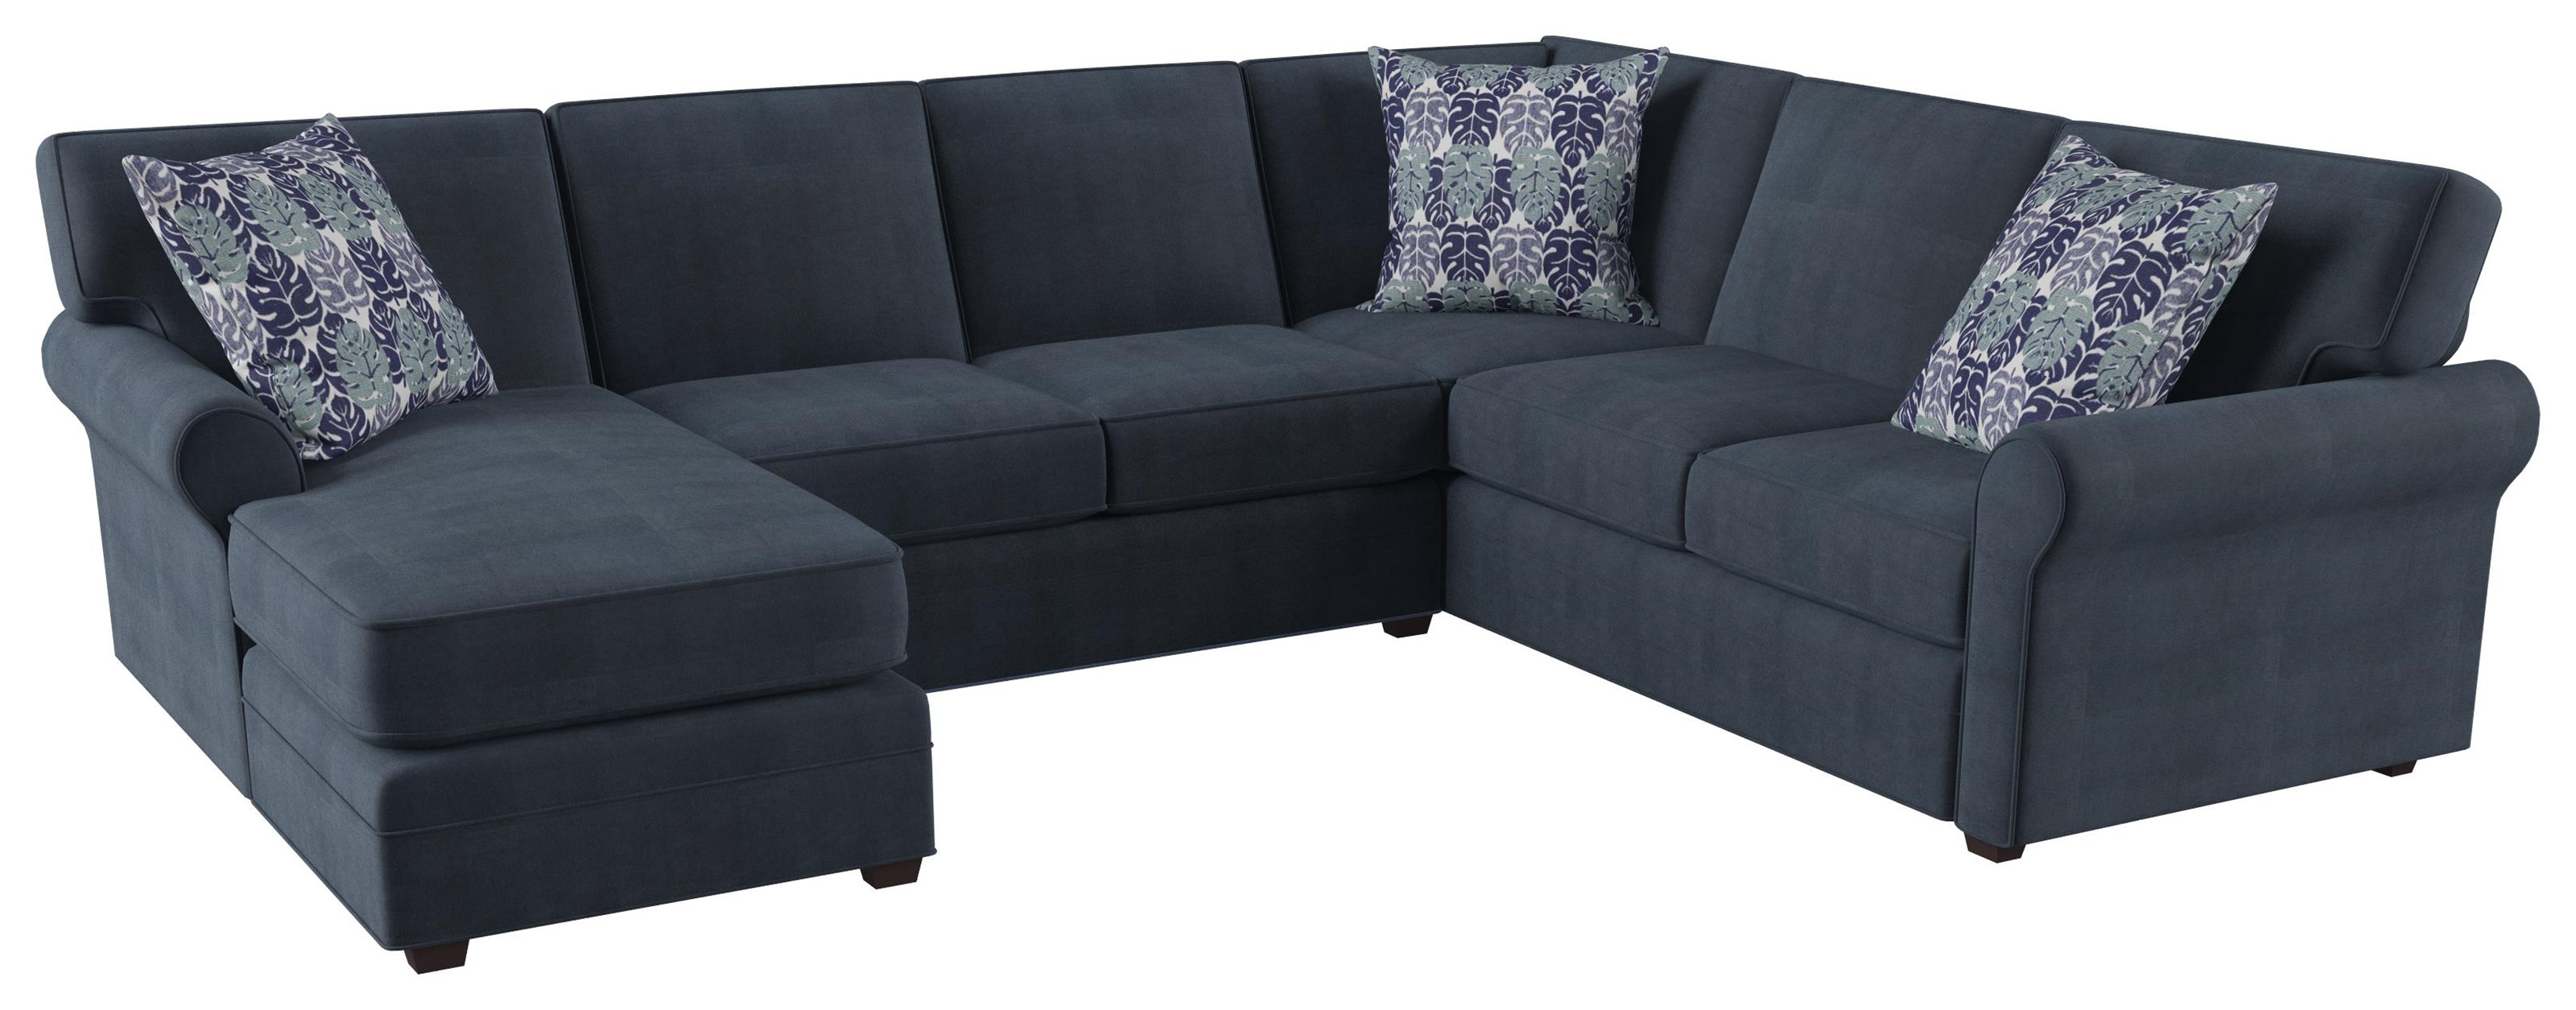 283 Eli Sectional by Sunset Home at Walker's Furniture